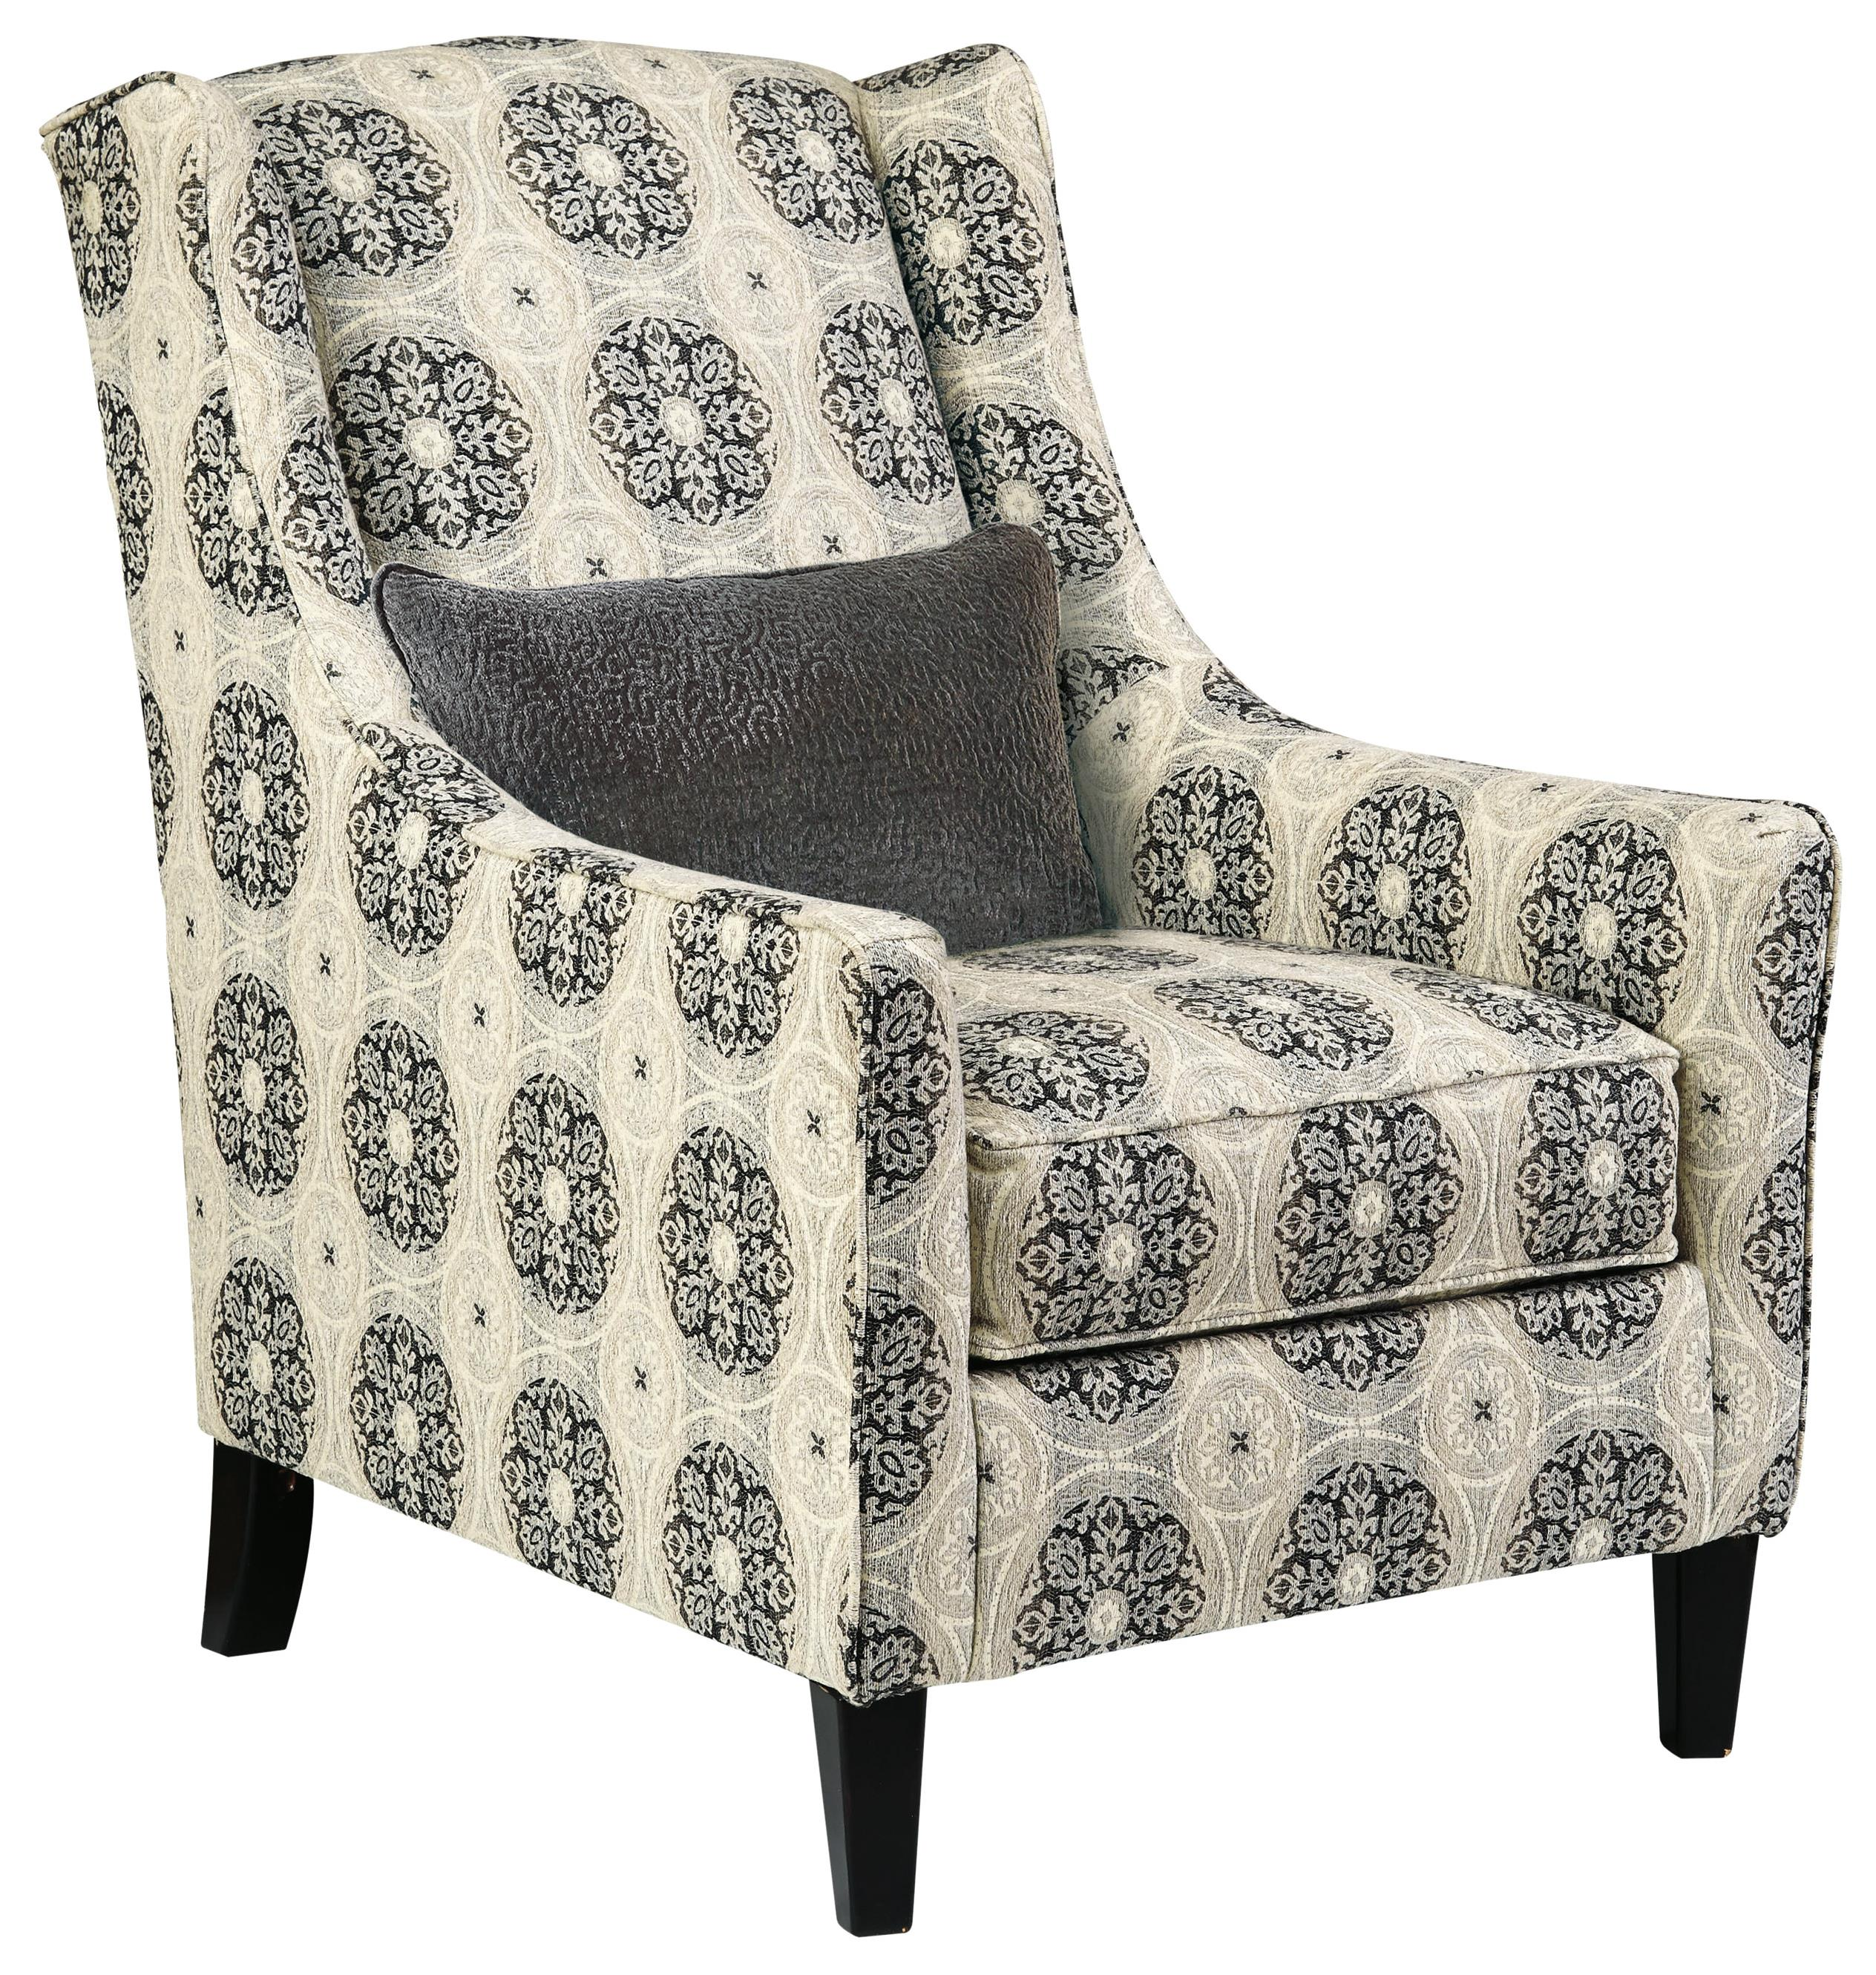 Ashley/Benchcraft Azlyn Accent Chair - Item Number: 9940221